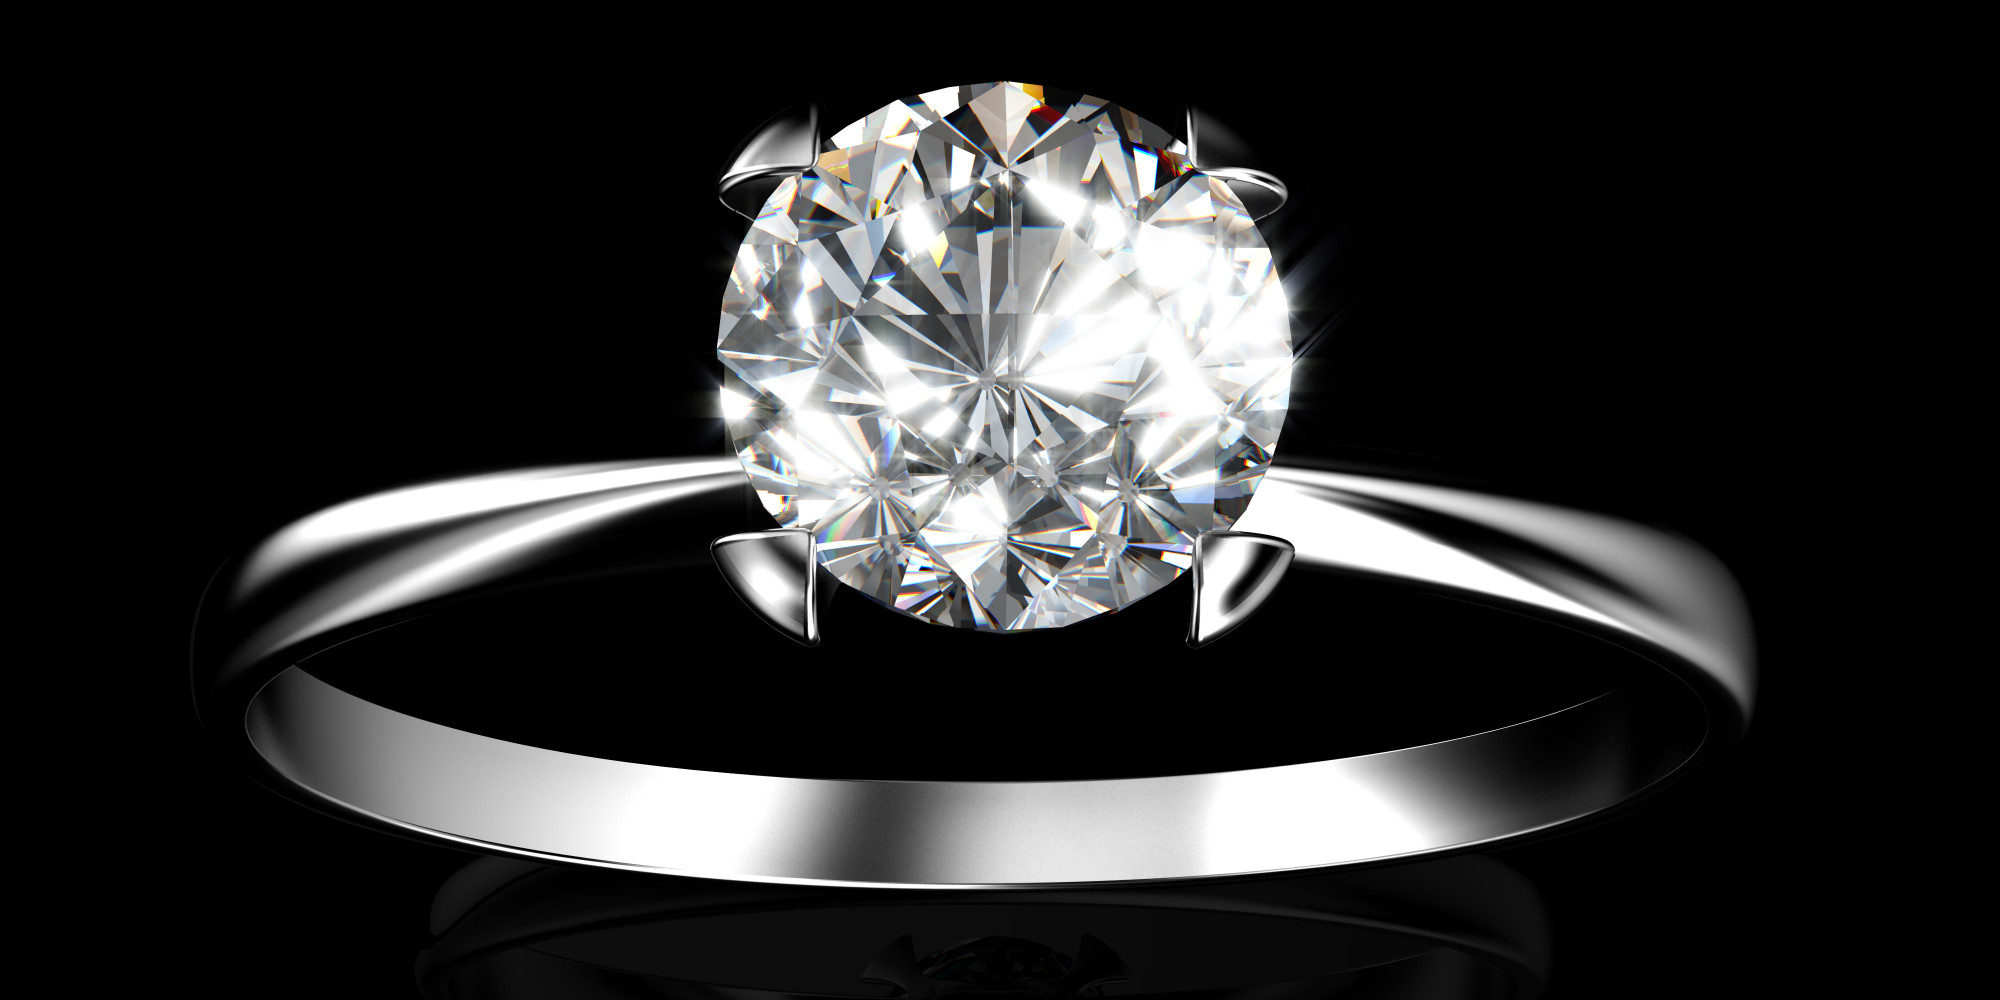 worlds expensive engagement rings wedding rings for sale